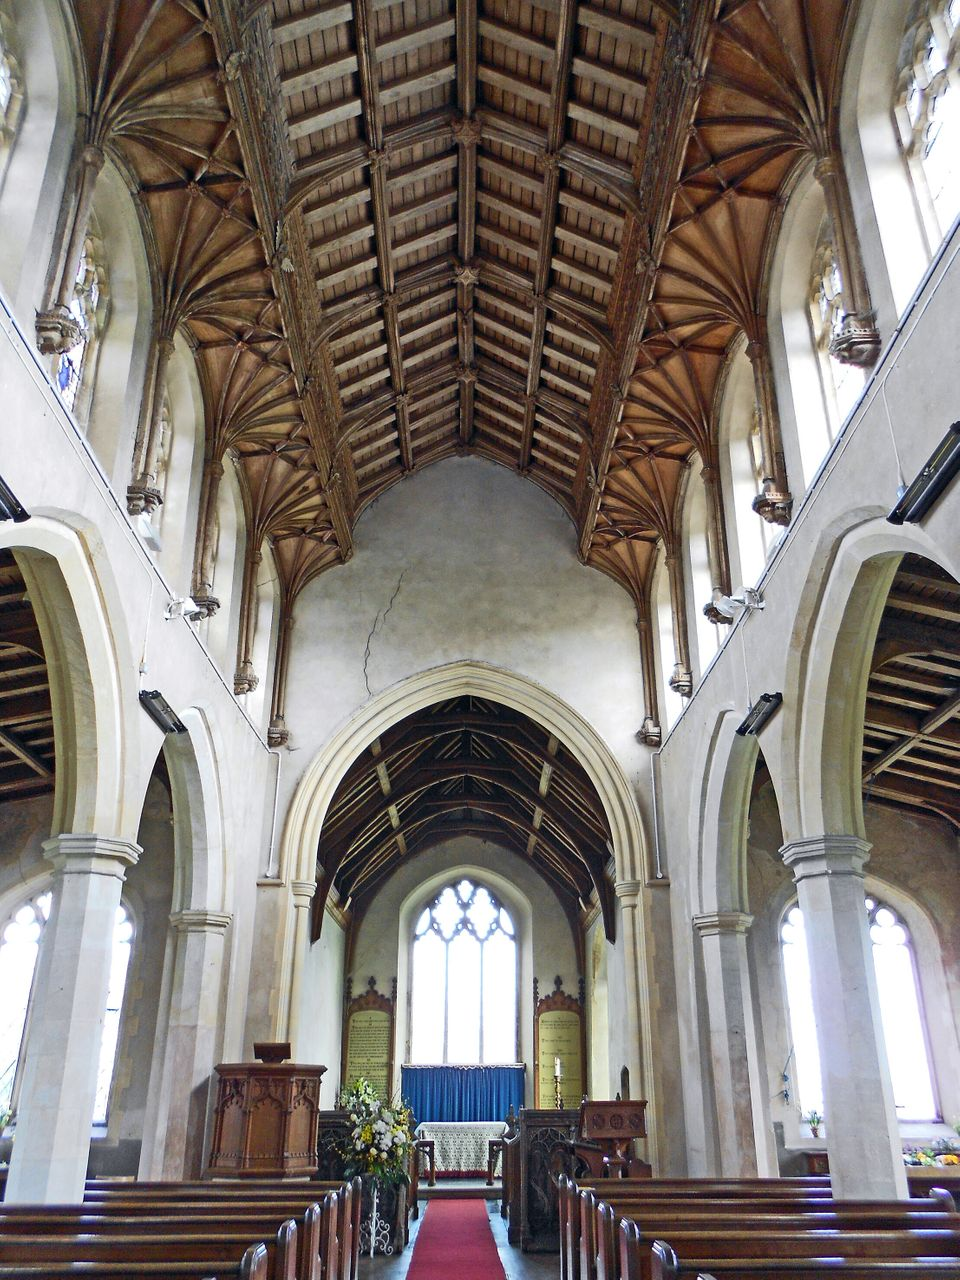 The medieval church at Ringland in Norfolk is a glorious setting for an Austen wedding, but not all ceremonies were joyous an